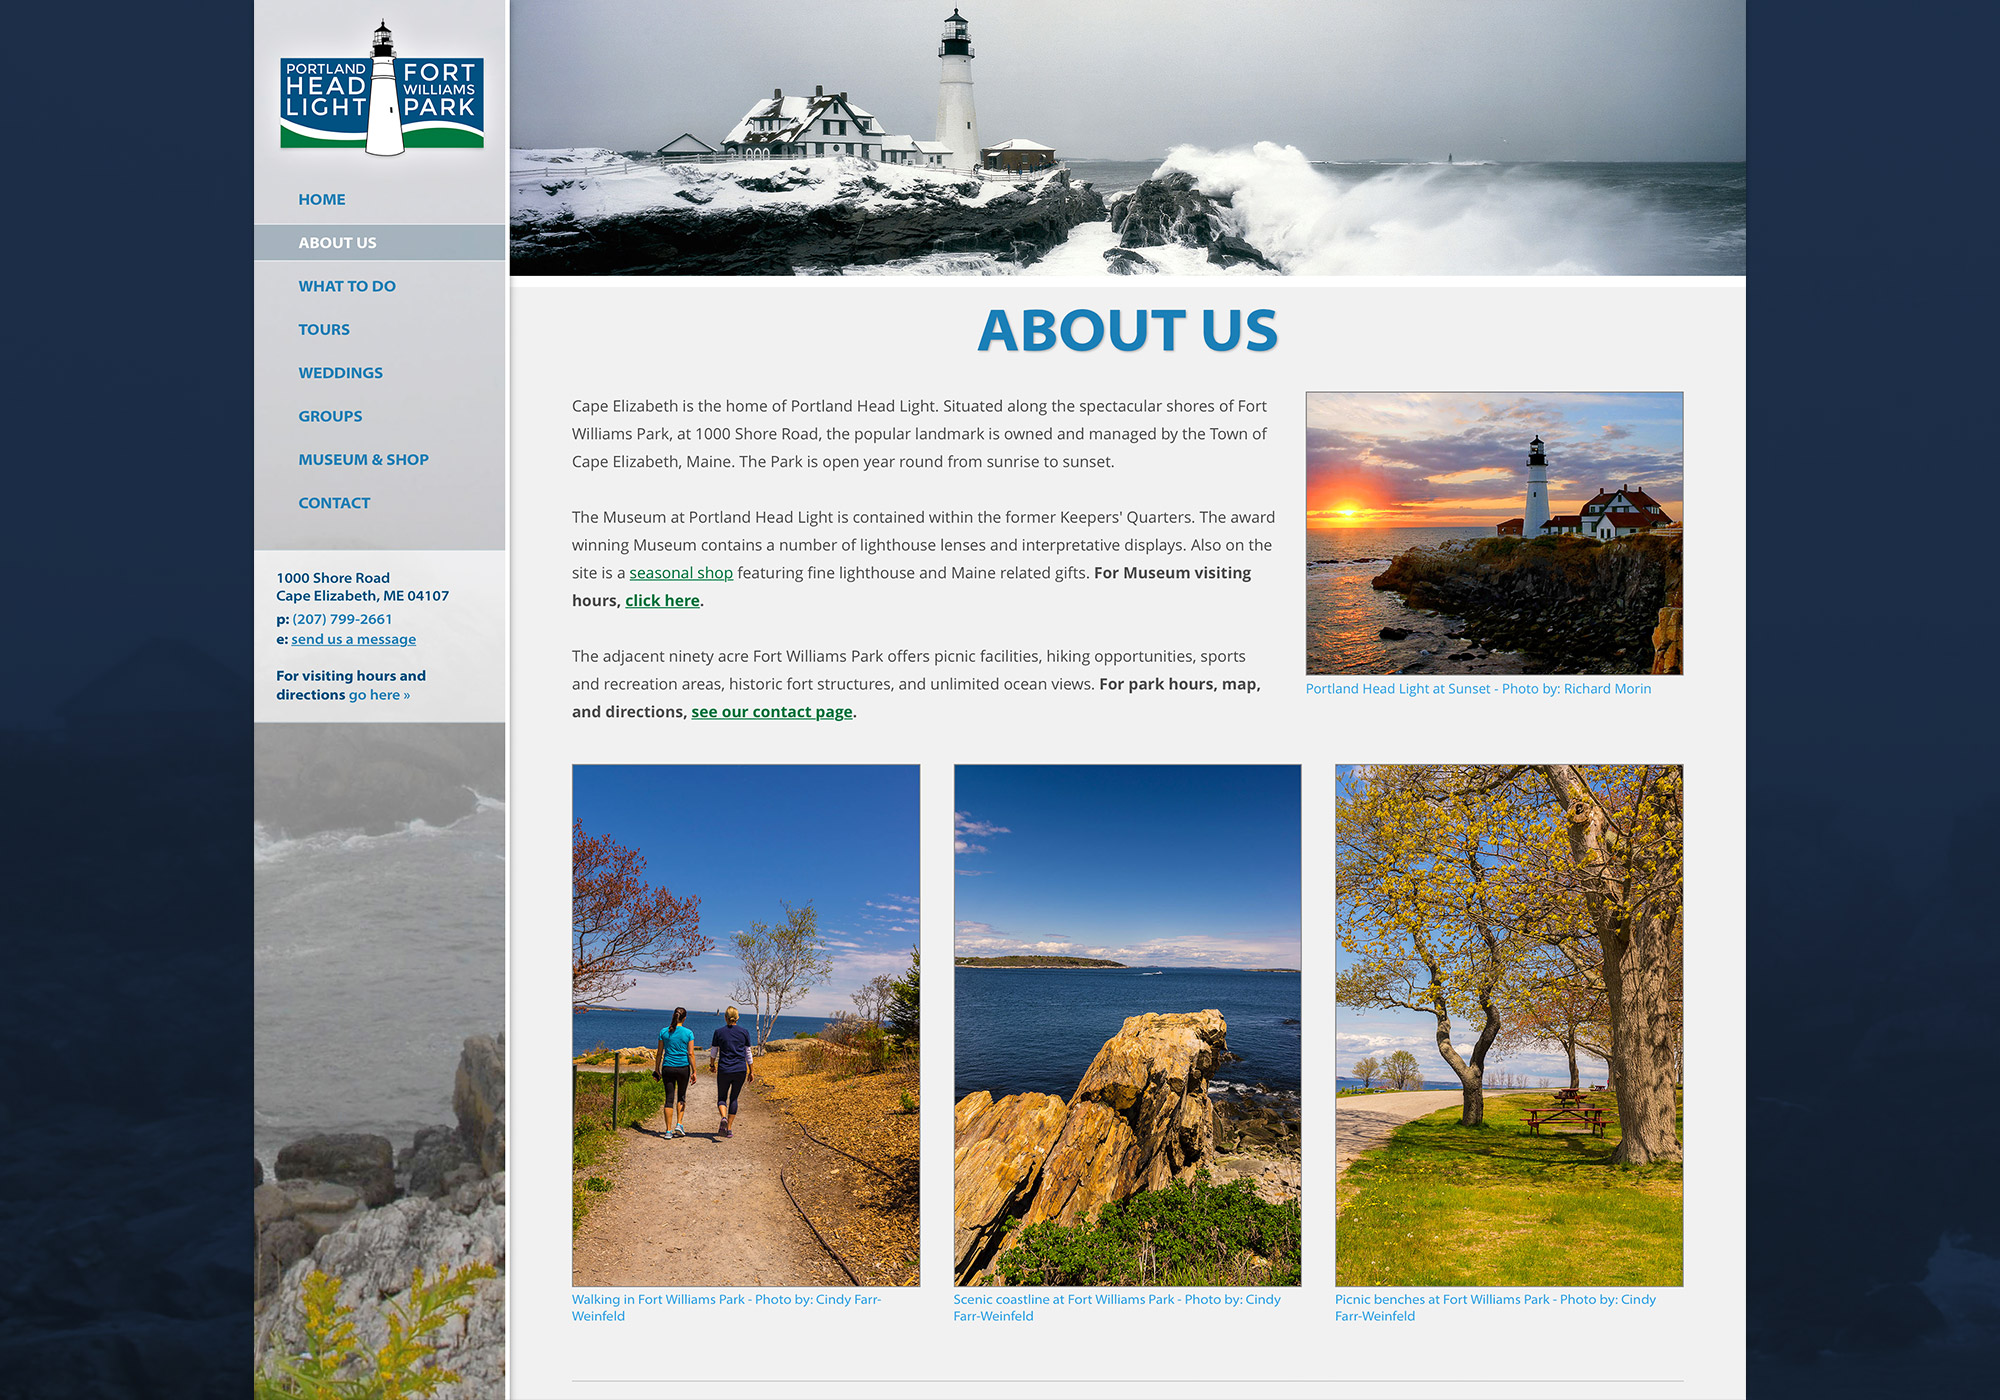 SlickFish, a Portland, Maine website design company, created an original, custom website for the Portland Head Light and Fort Williams Park.